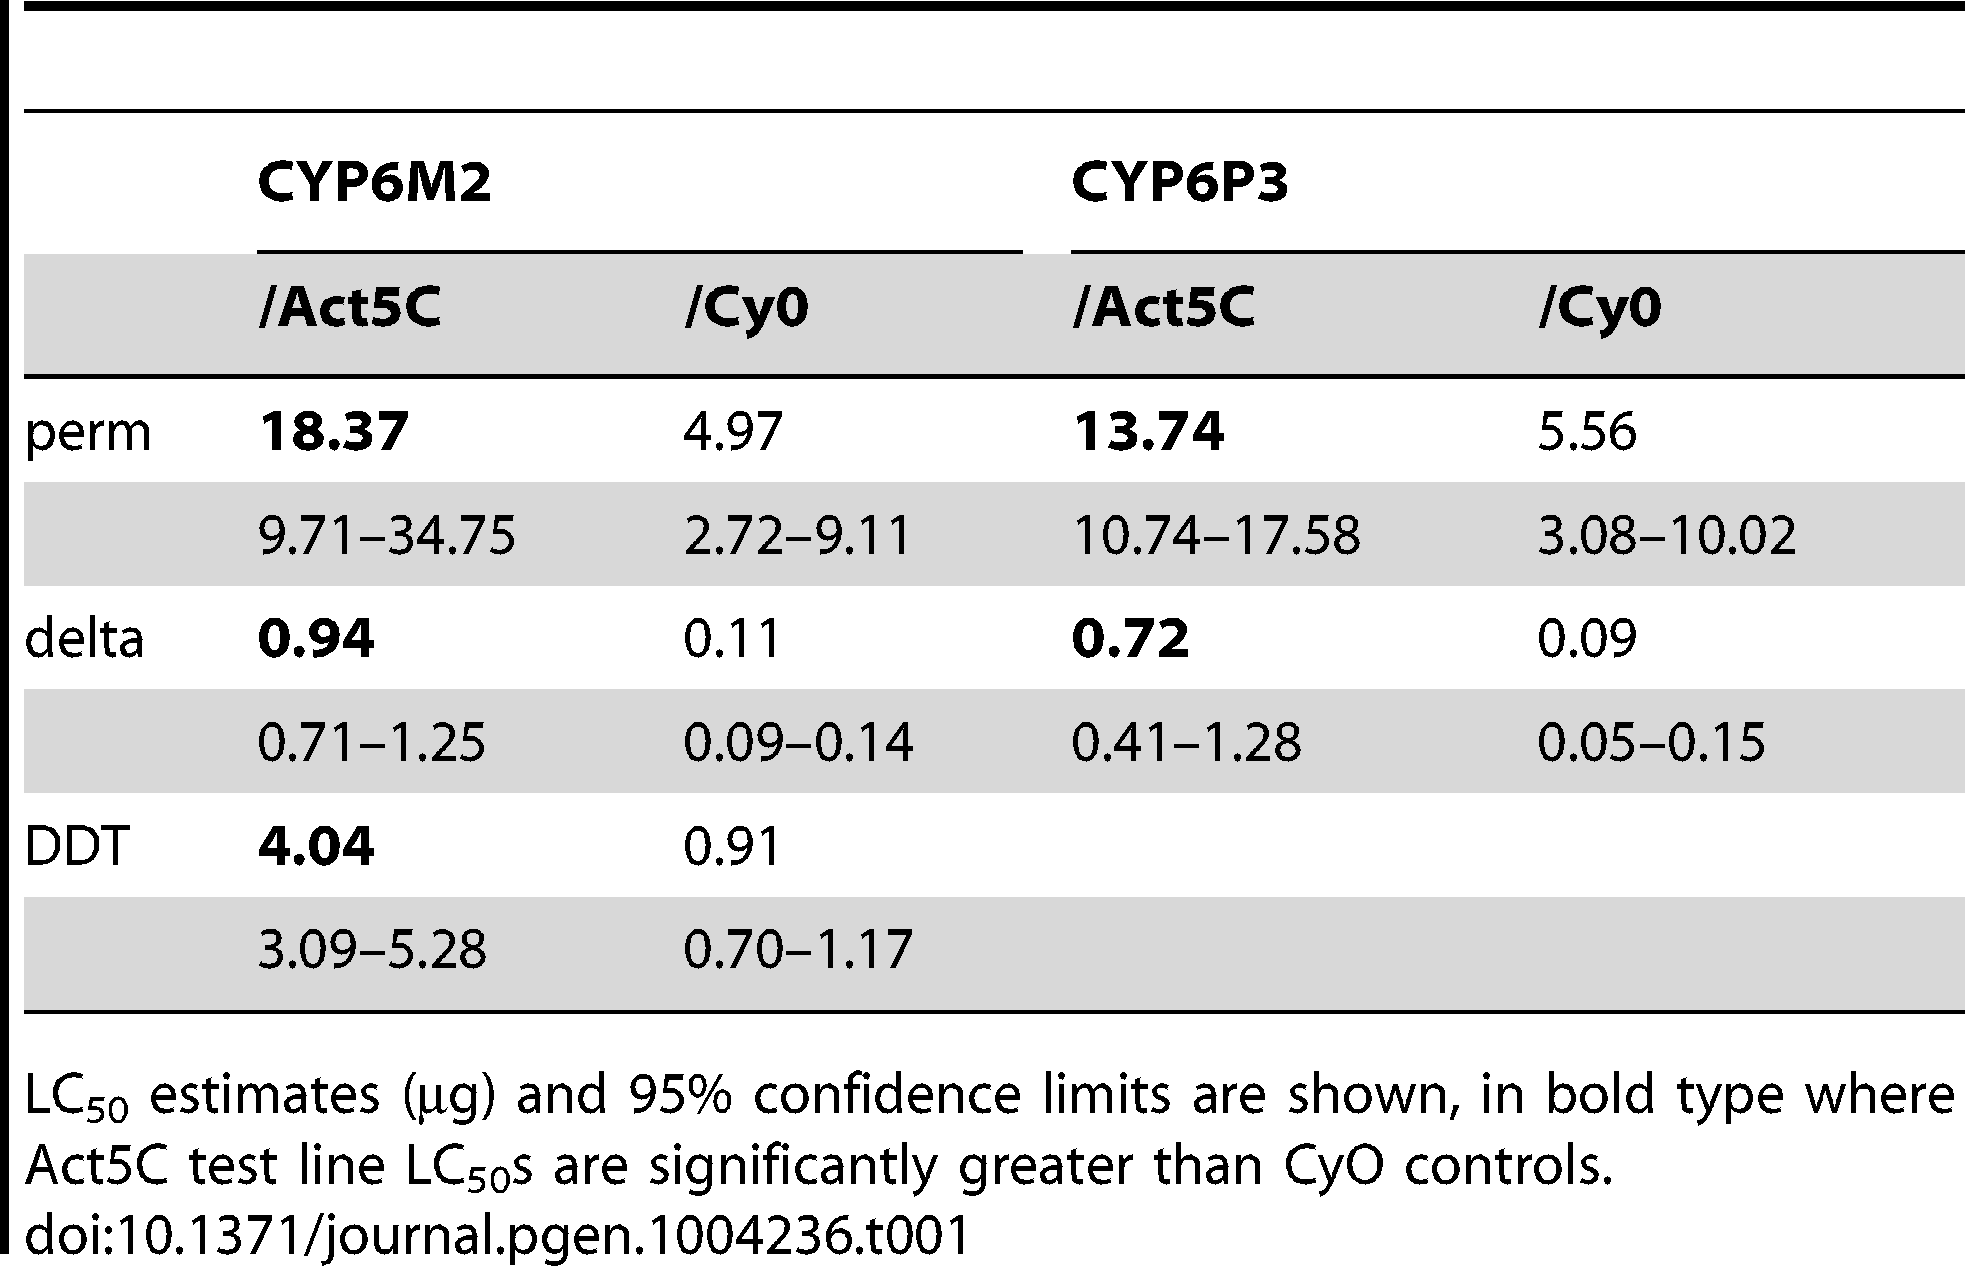 Survival of transformed <i>D. melanogaster</i> expressing <i>CYP6M2</i> and <i>CYP6P3</i> exposed to the pyrethroids permethrin and deltamethrin, and for <i>CYP6M2</i> also DDT.